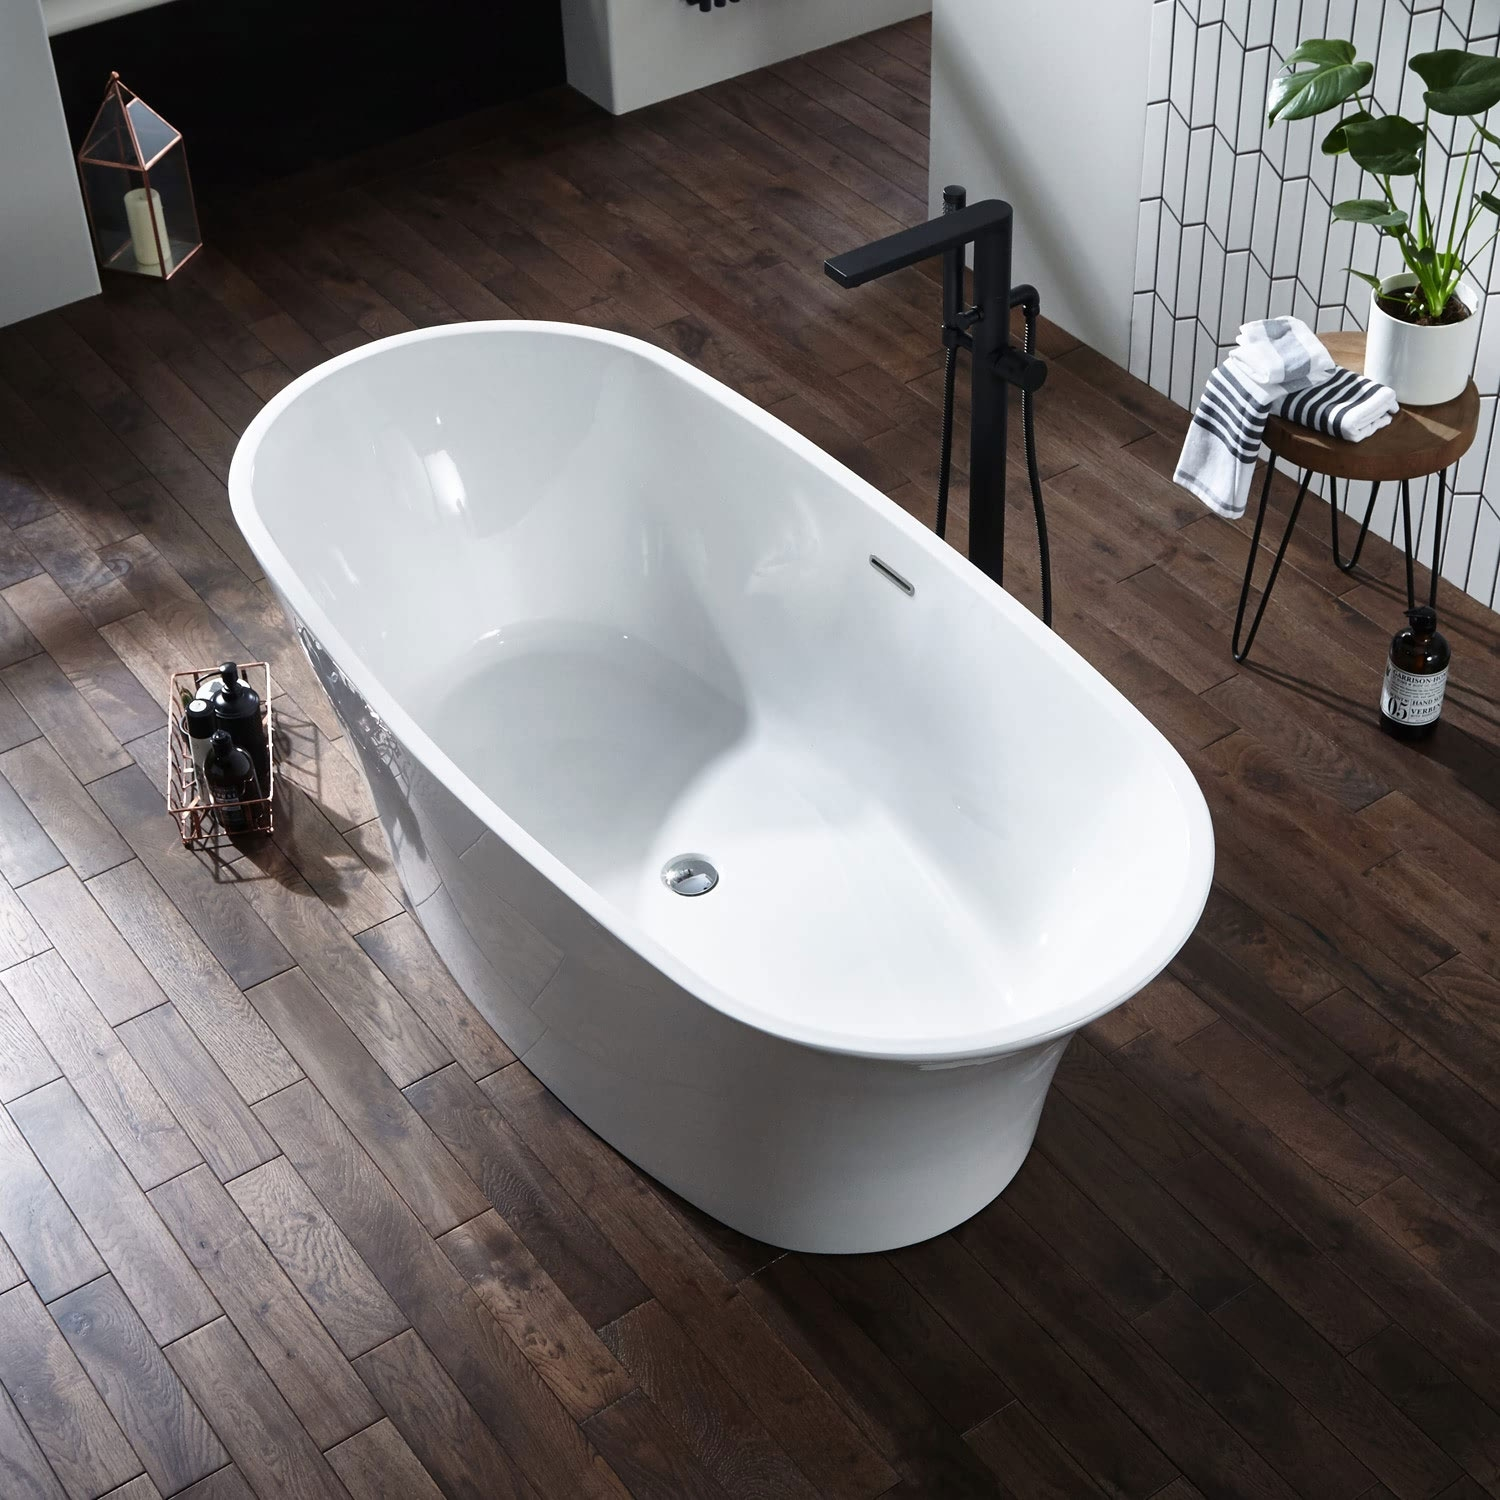 Verona Ion Luxury Freestanding Bath 1700mm x 800mm with Integrated Waste-0